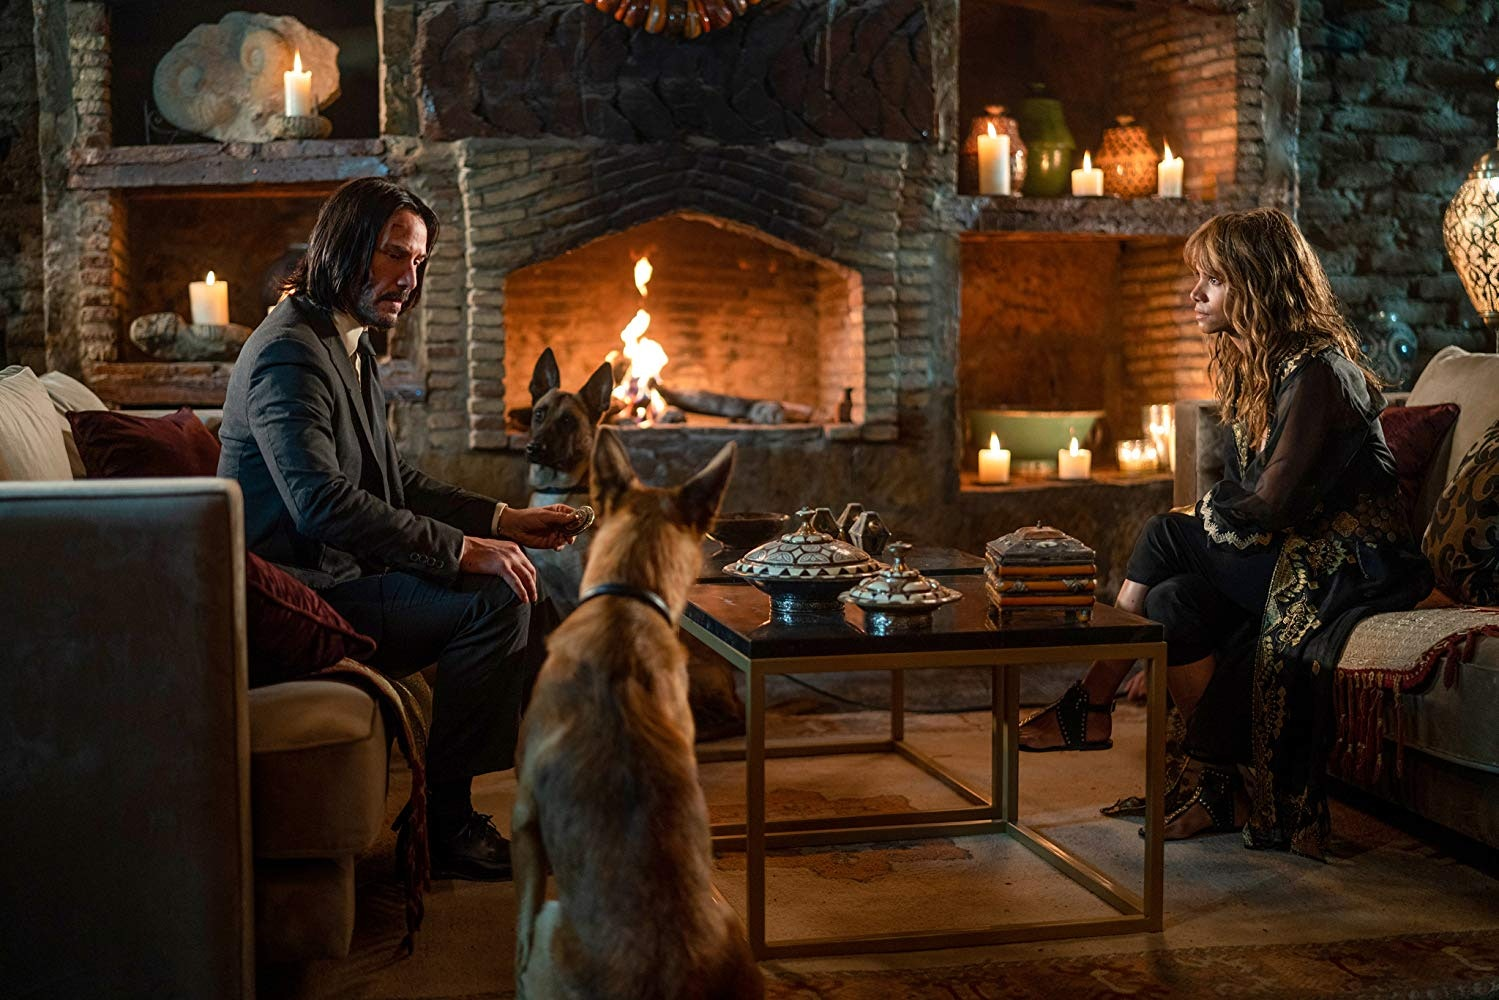 Keanu Reeves and Halle Berry in 'John Wick 3 - Parabellum'